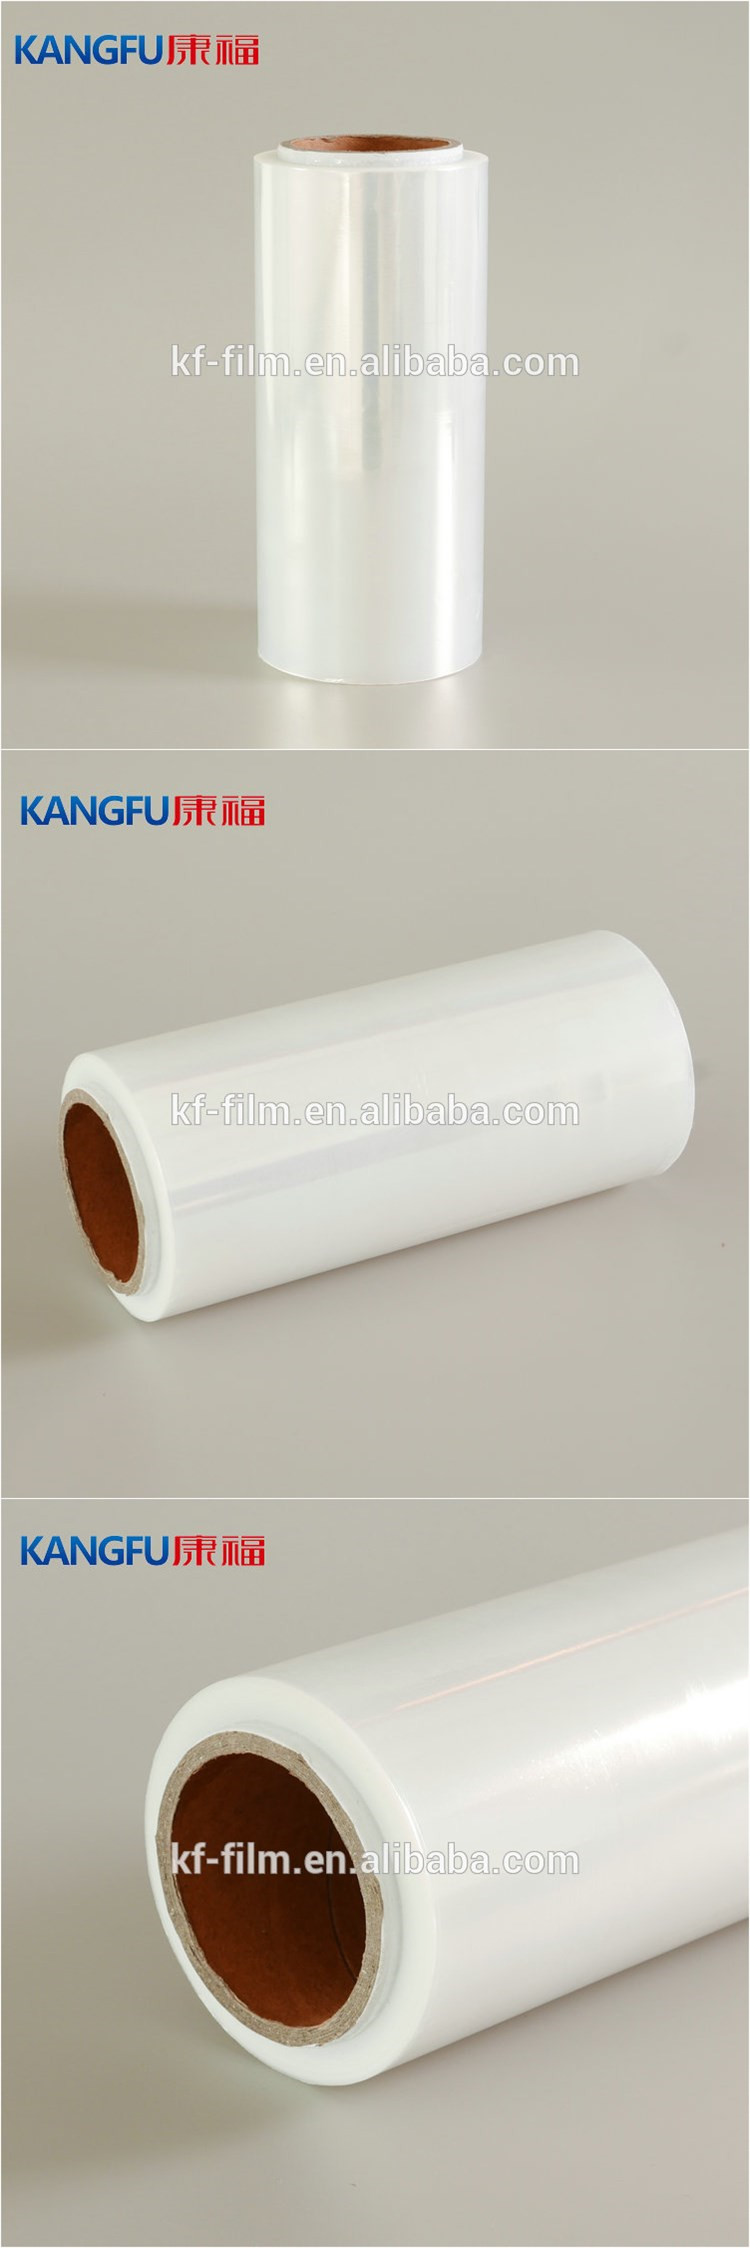 Wholesale Clear Food Anti-fog PE Cling Film Plastic Wrap for Fresh